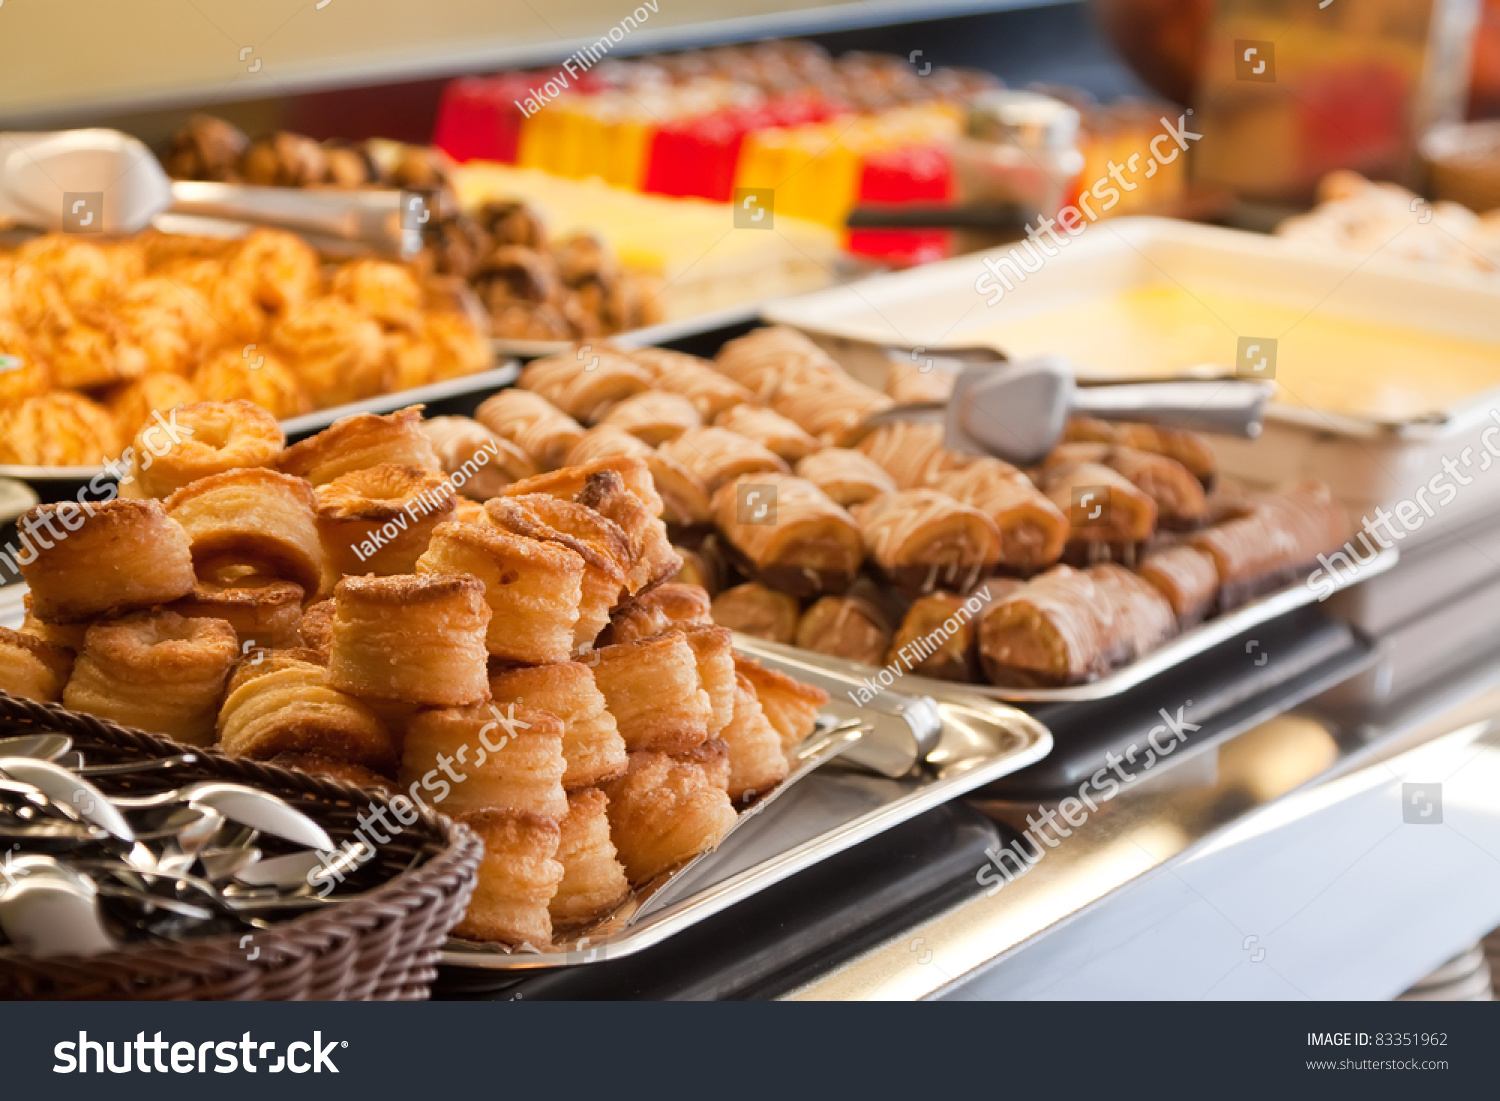 Assortment Of Fresh Pastry On Table In Buffet